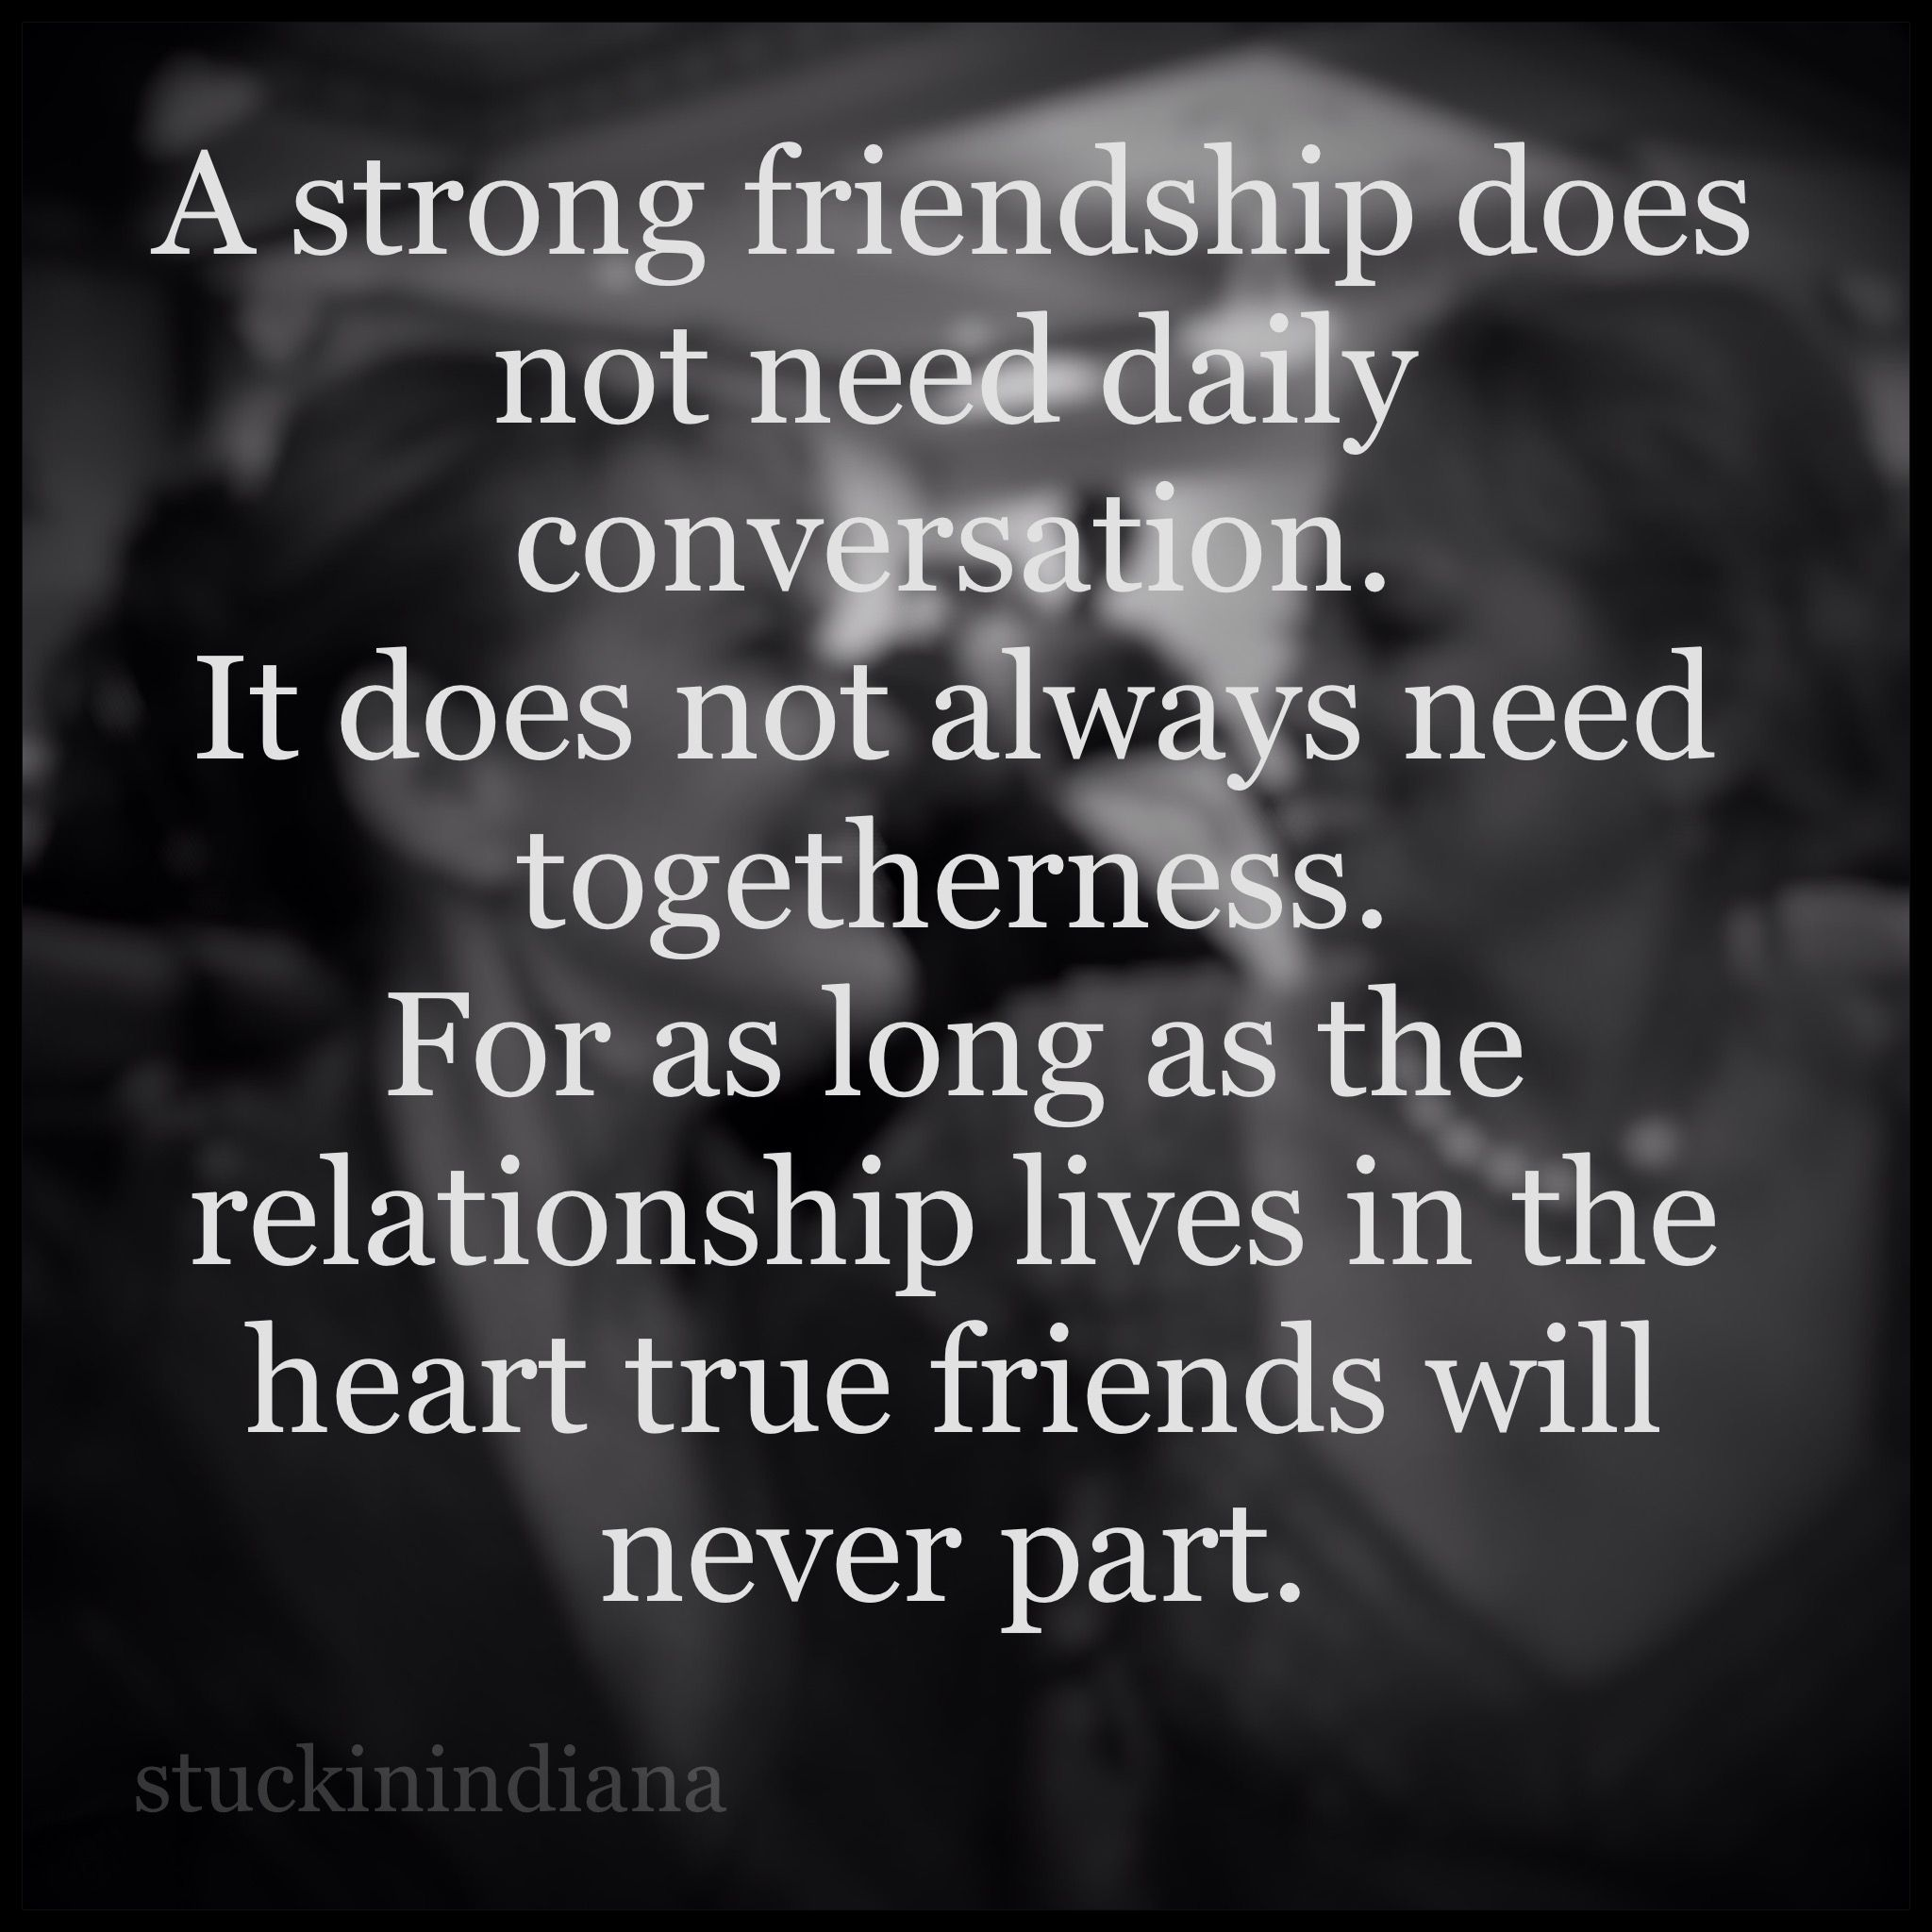 Quotes About Strong Friendship A Strong Friendship Does Not Need Daily Conversationit Does Not